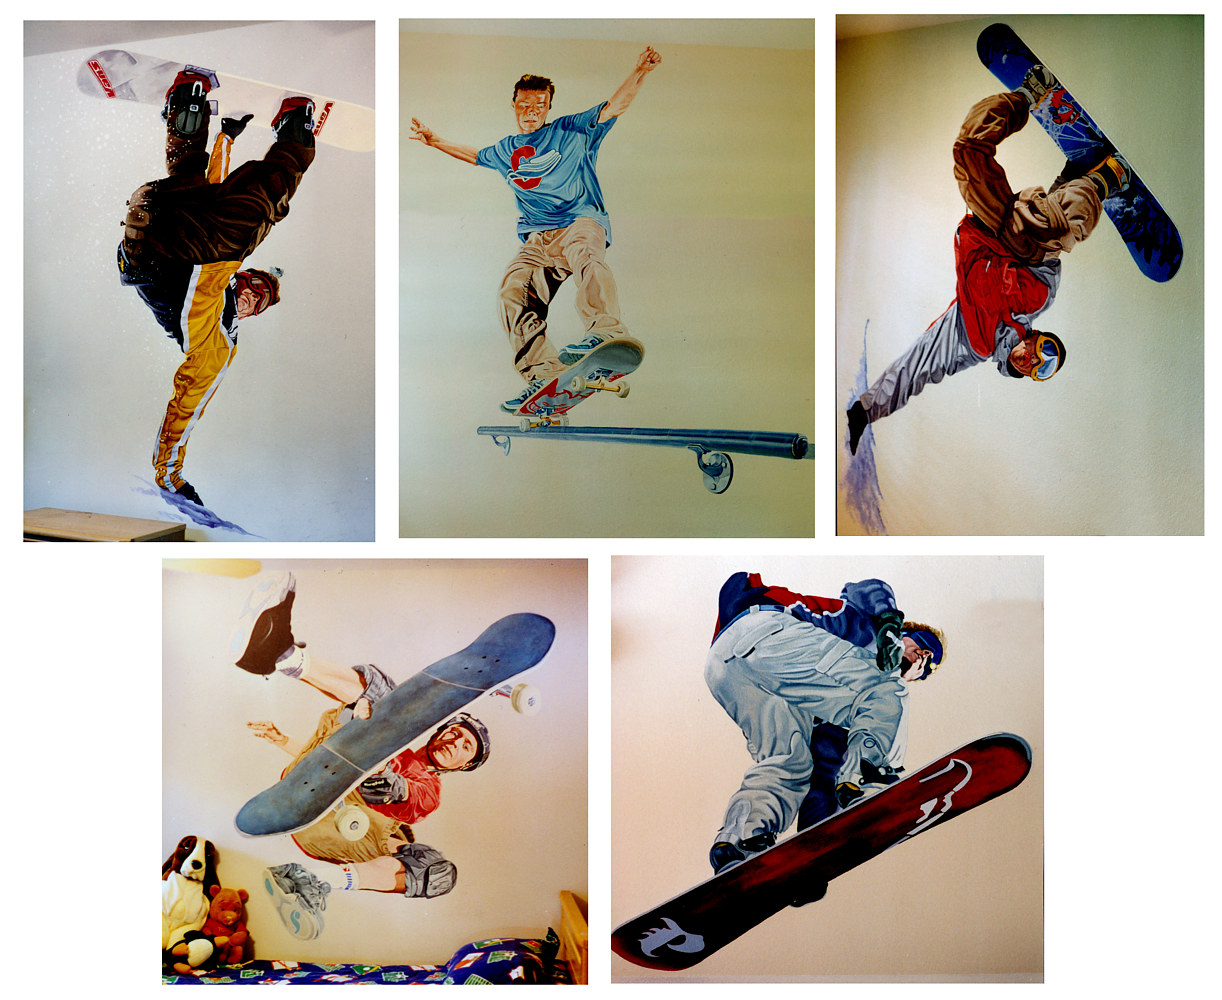 Life Size Skaters and Snowboarders for Kids Room by Robert Milling